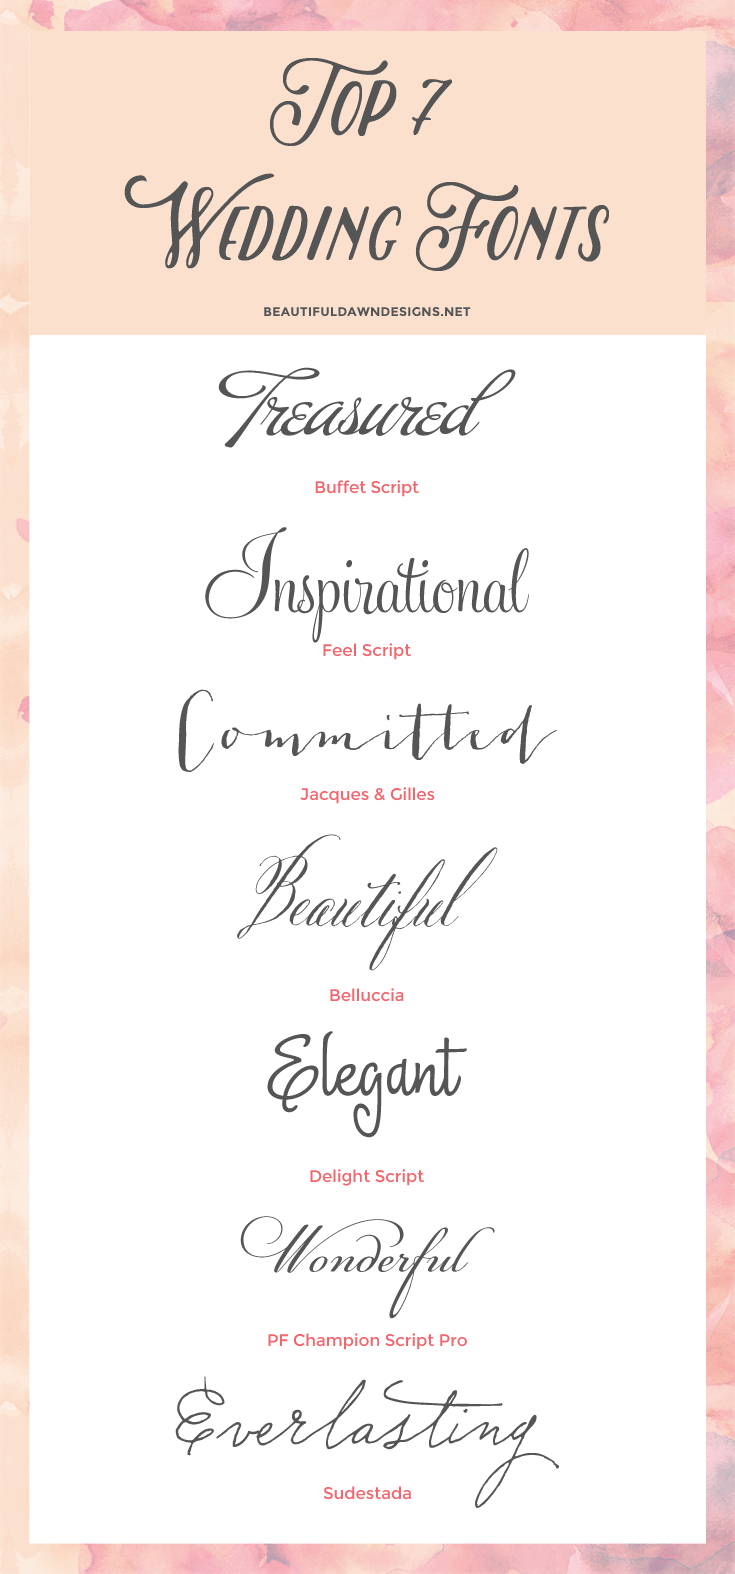 Invitation Handwriting Font My Top 7 Fonts For Weddings | Fonts | Wedding Invitation